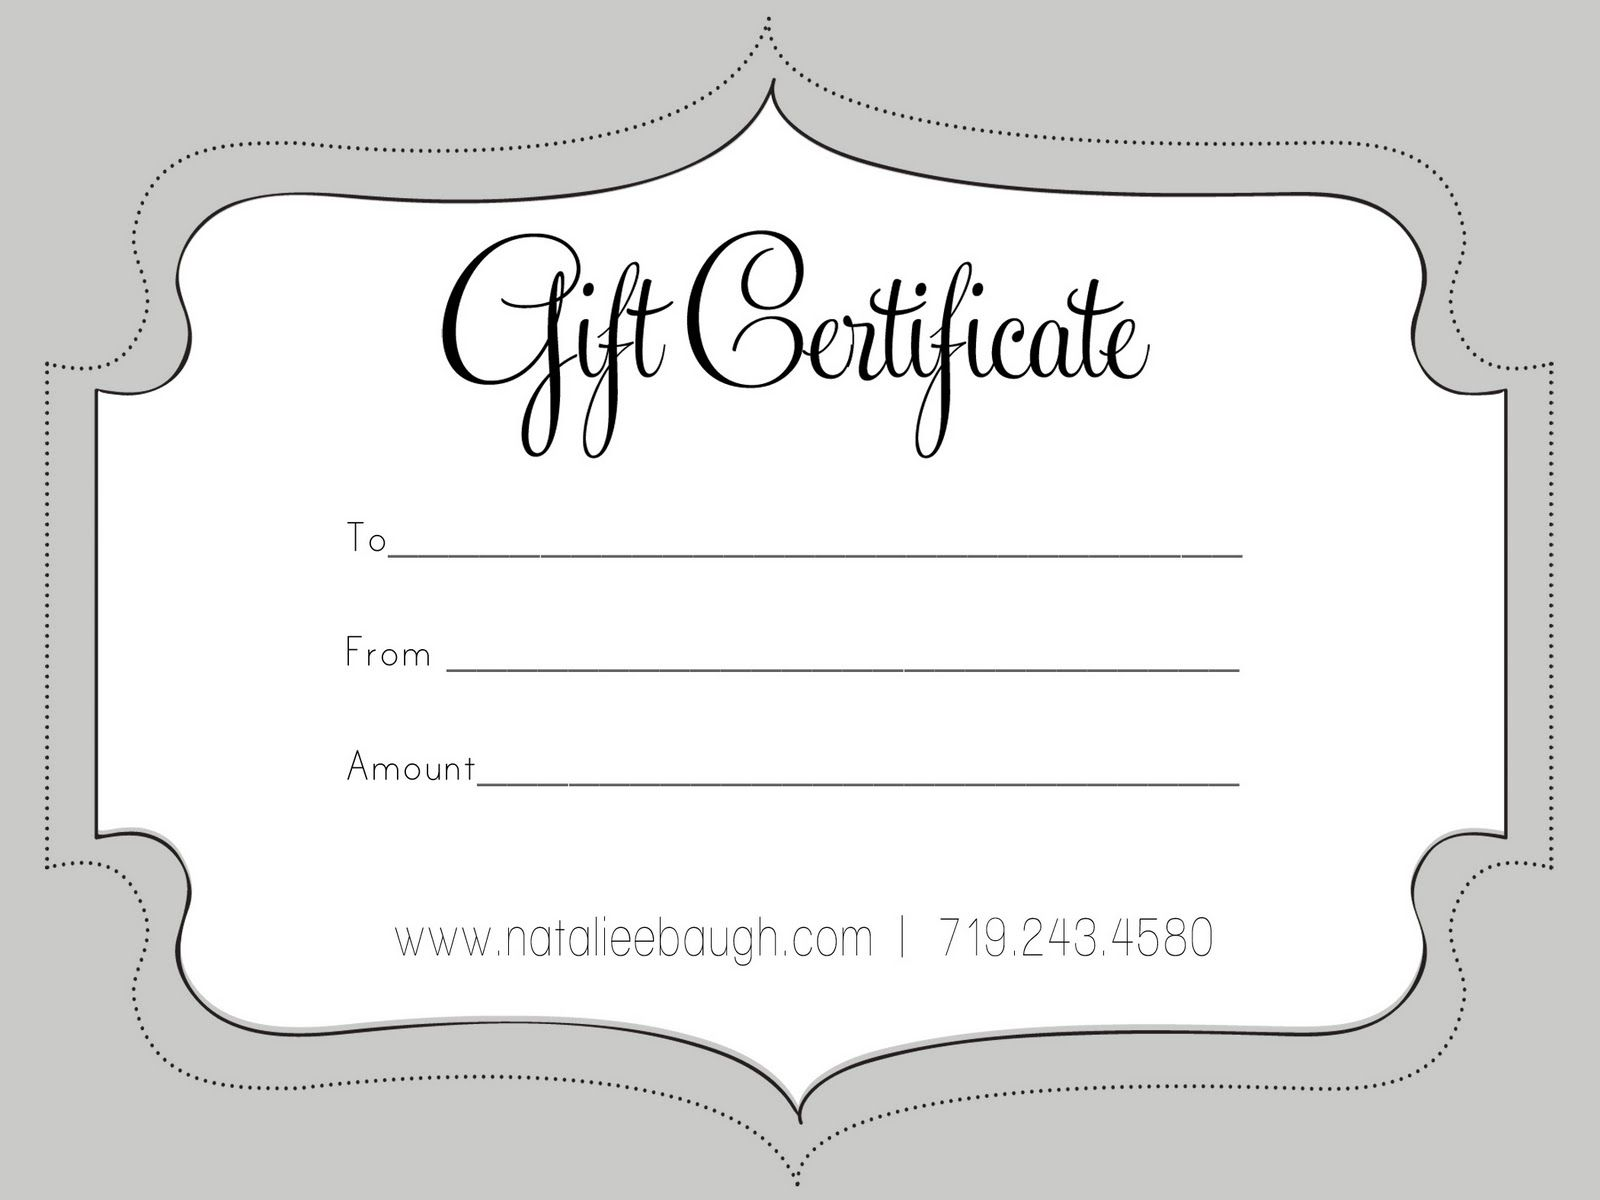 A cute looking gift certificate s p a pinterest gift gift certificates for portrait sessions virginia beach norfolk va photographers melissa bliss photography business ideas yadclub